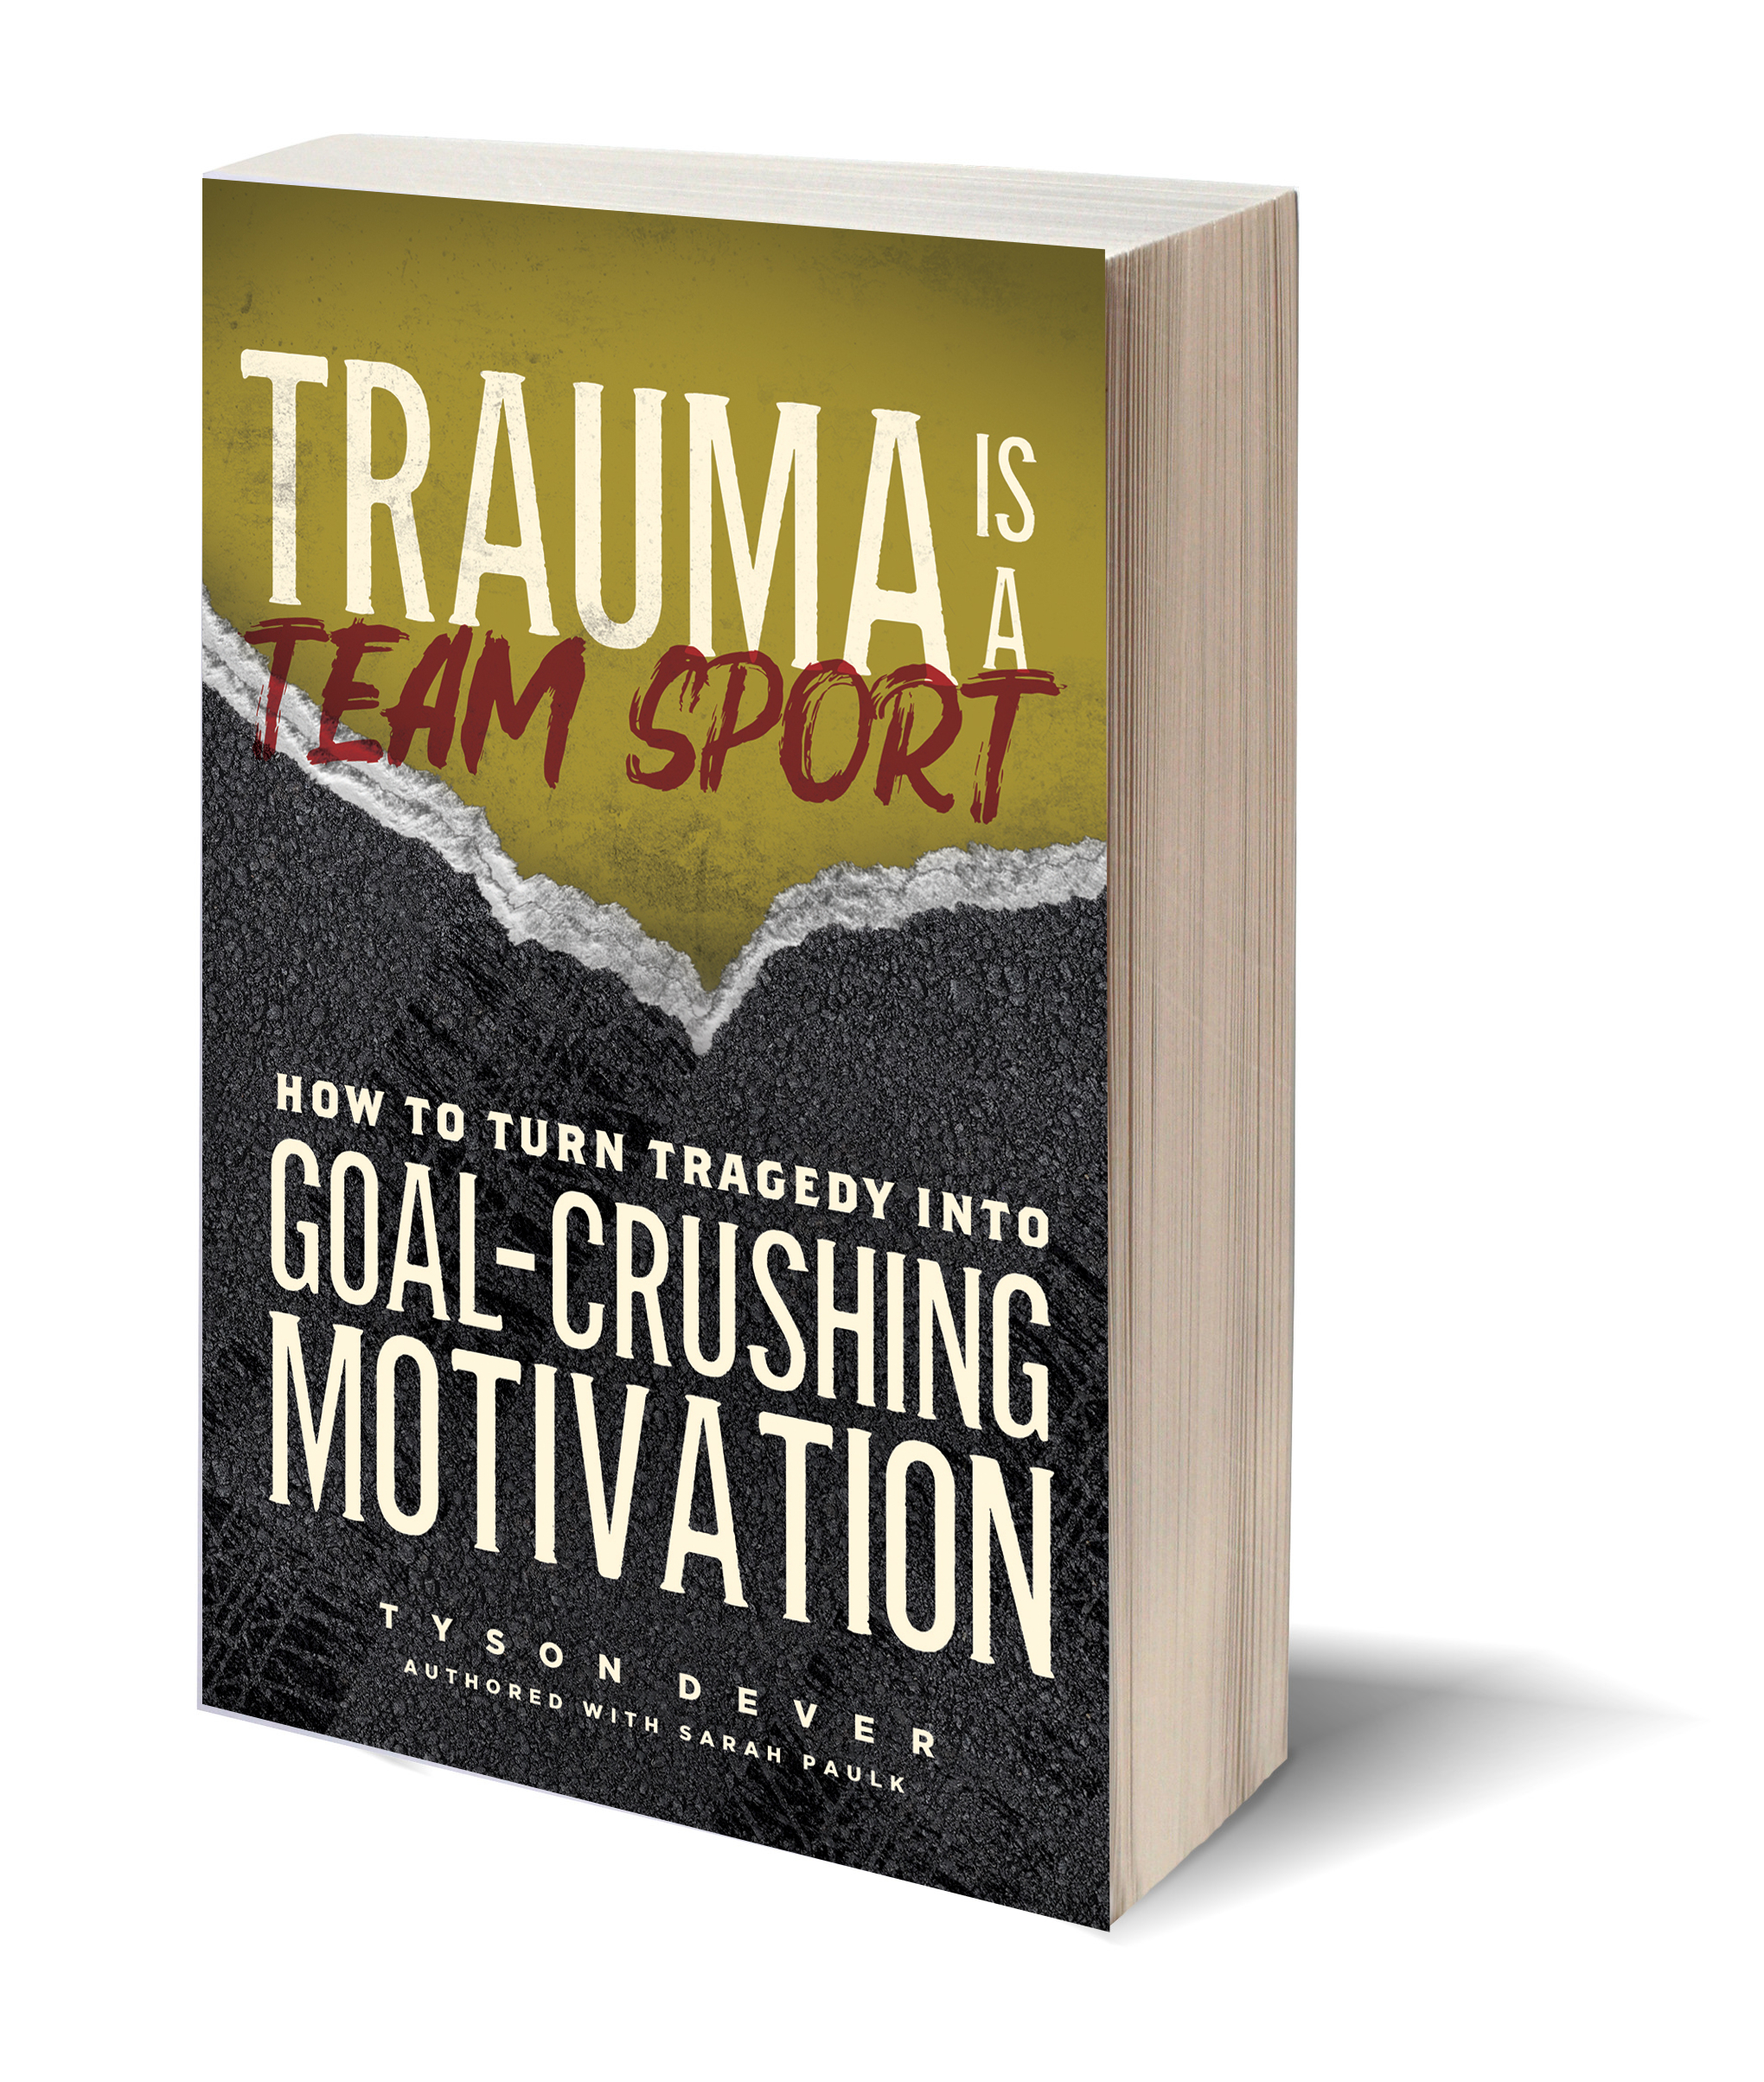 3d Trauma Is a Team Sport cover.jpg